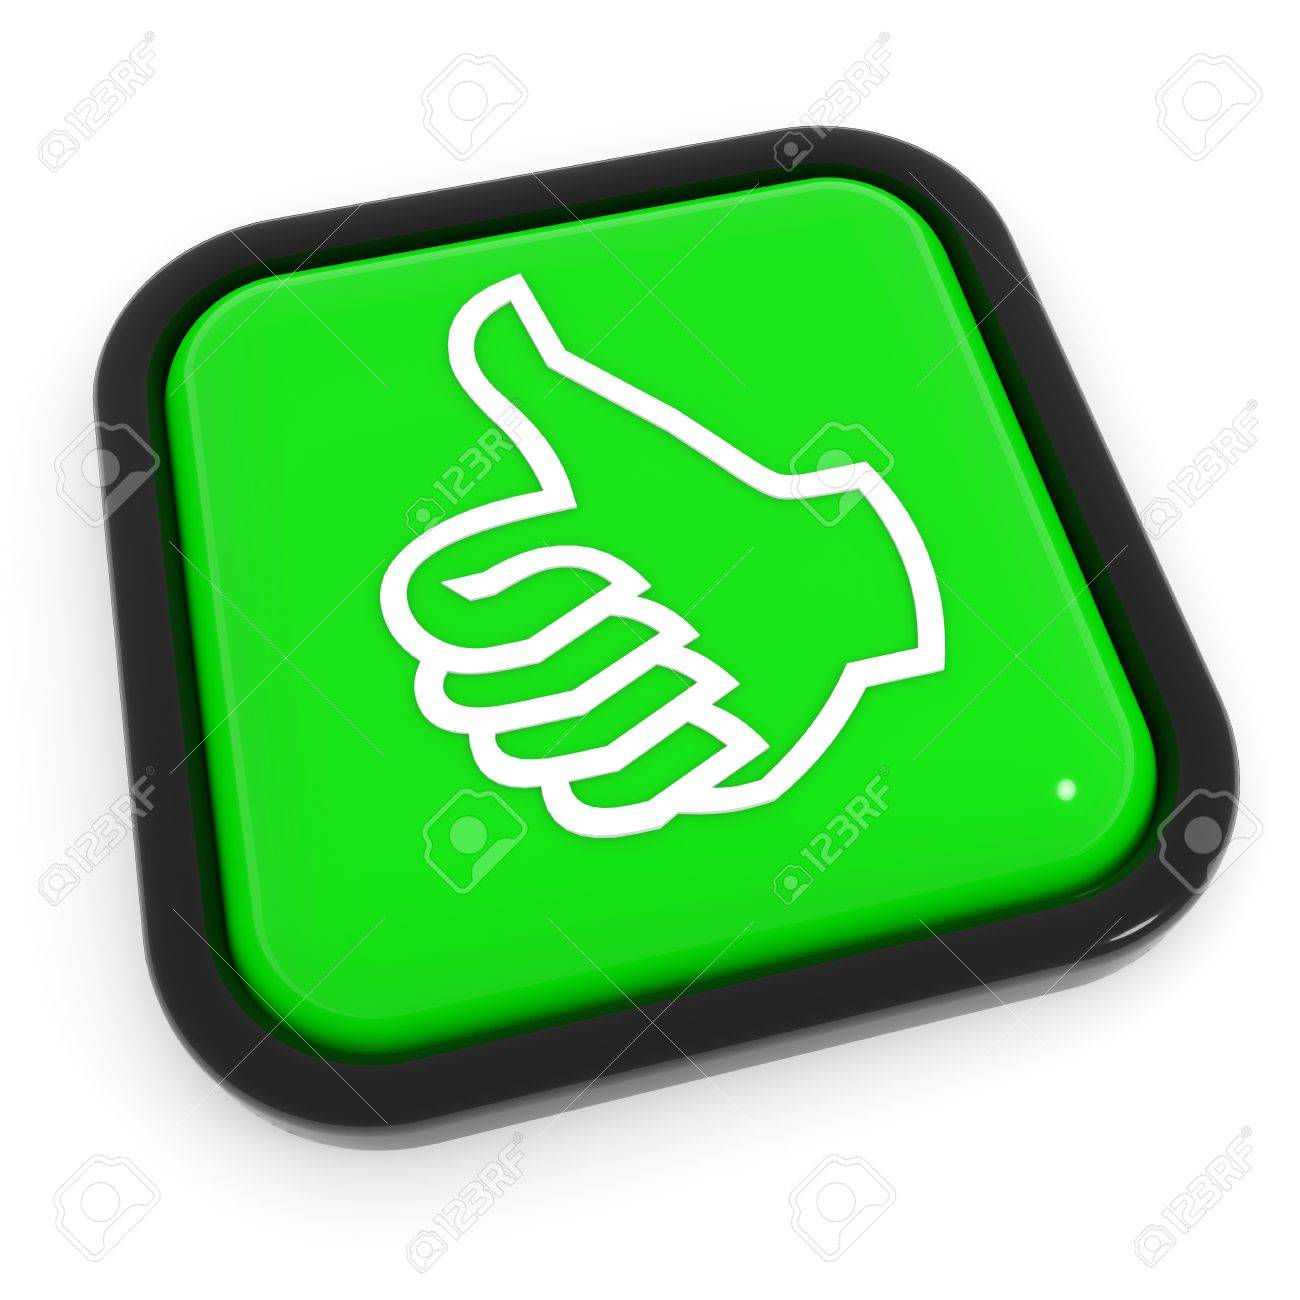 Thumbs up gesture green button. Computer generated image. Stock Photo - 11818149